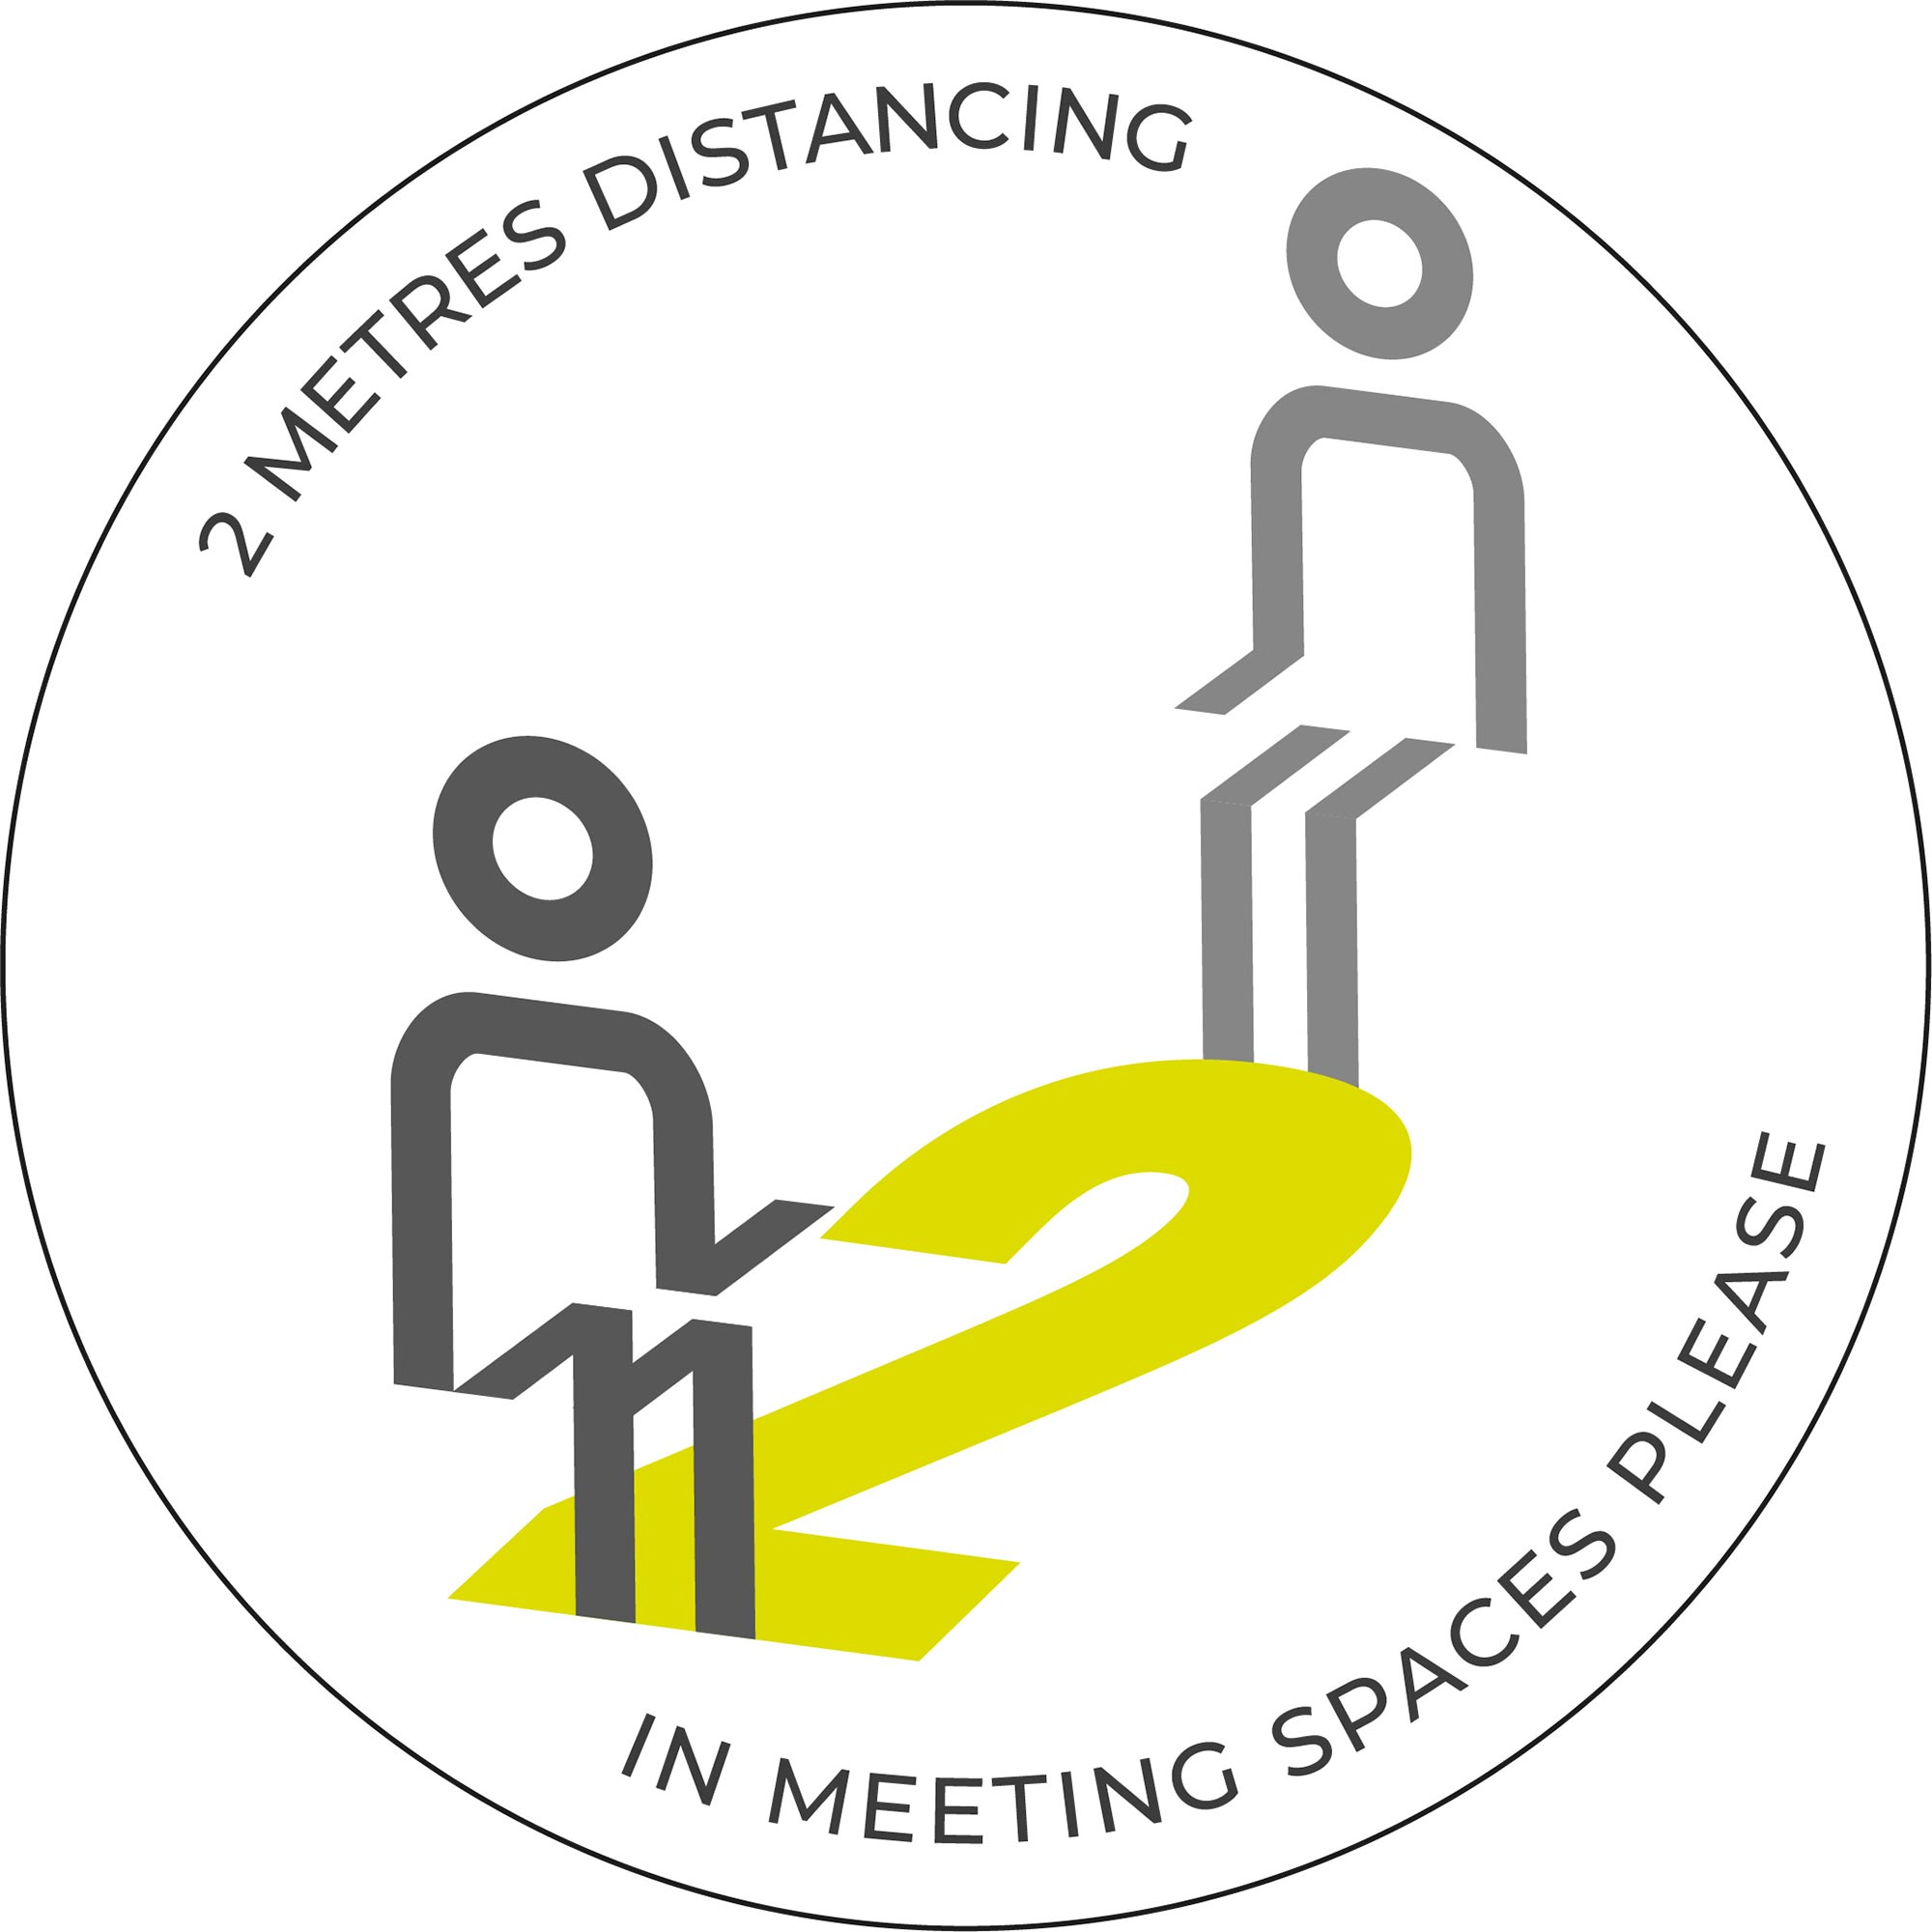 Meeting Spaces Distancing - White